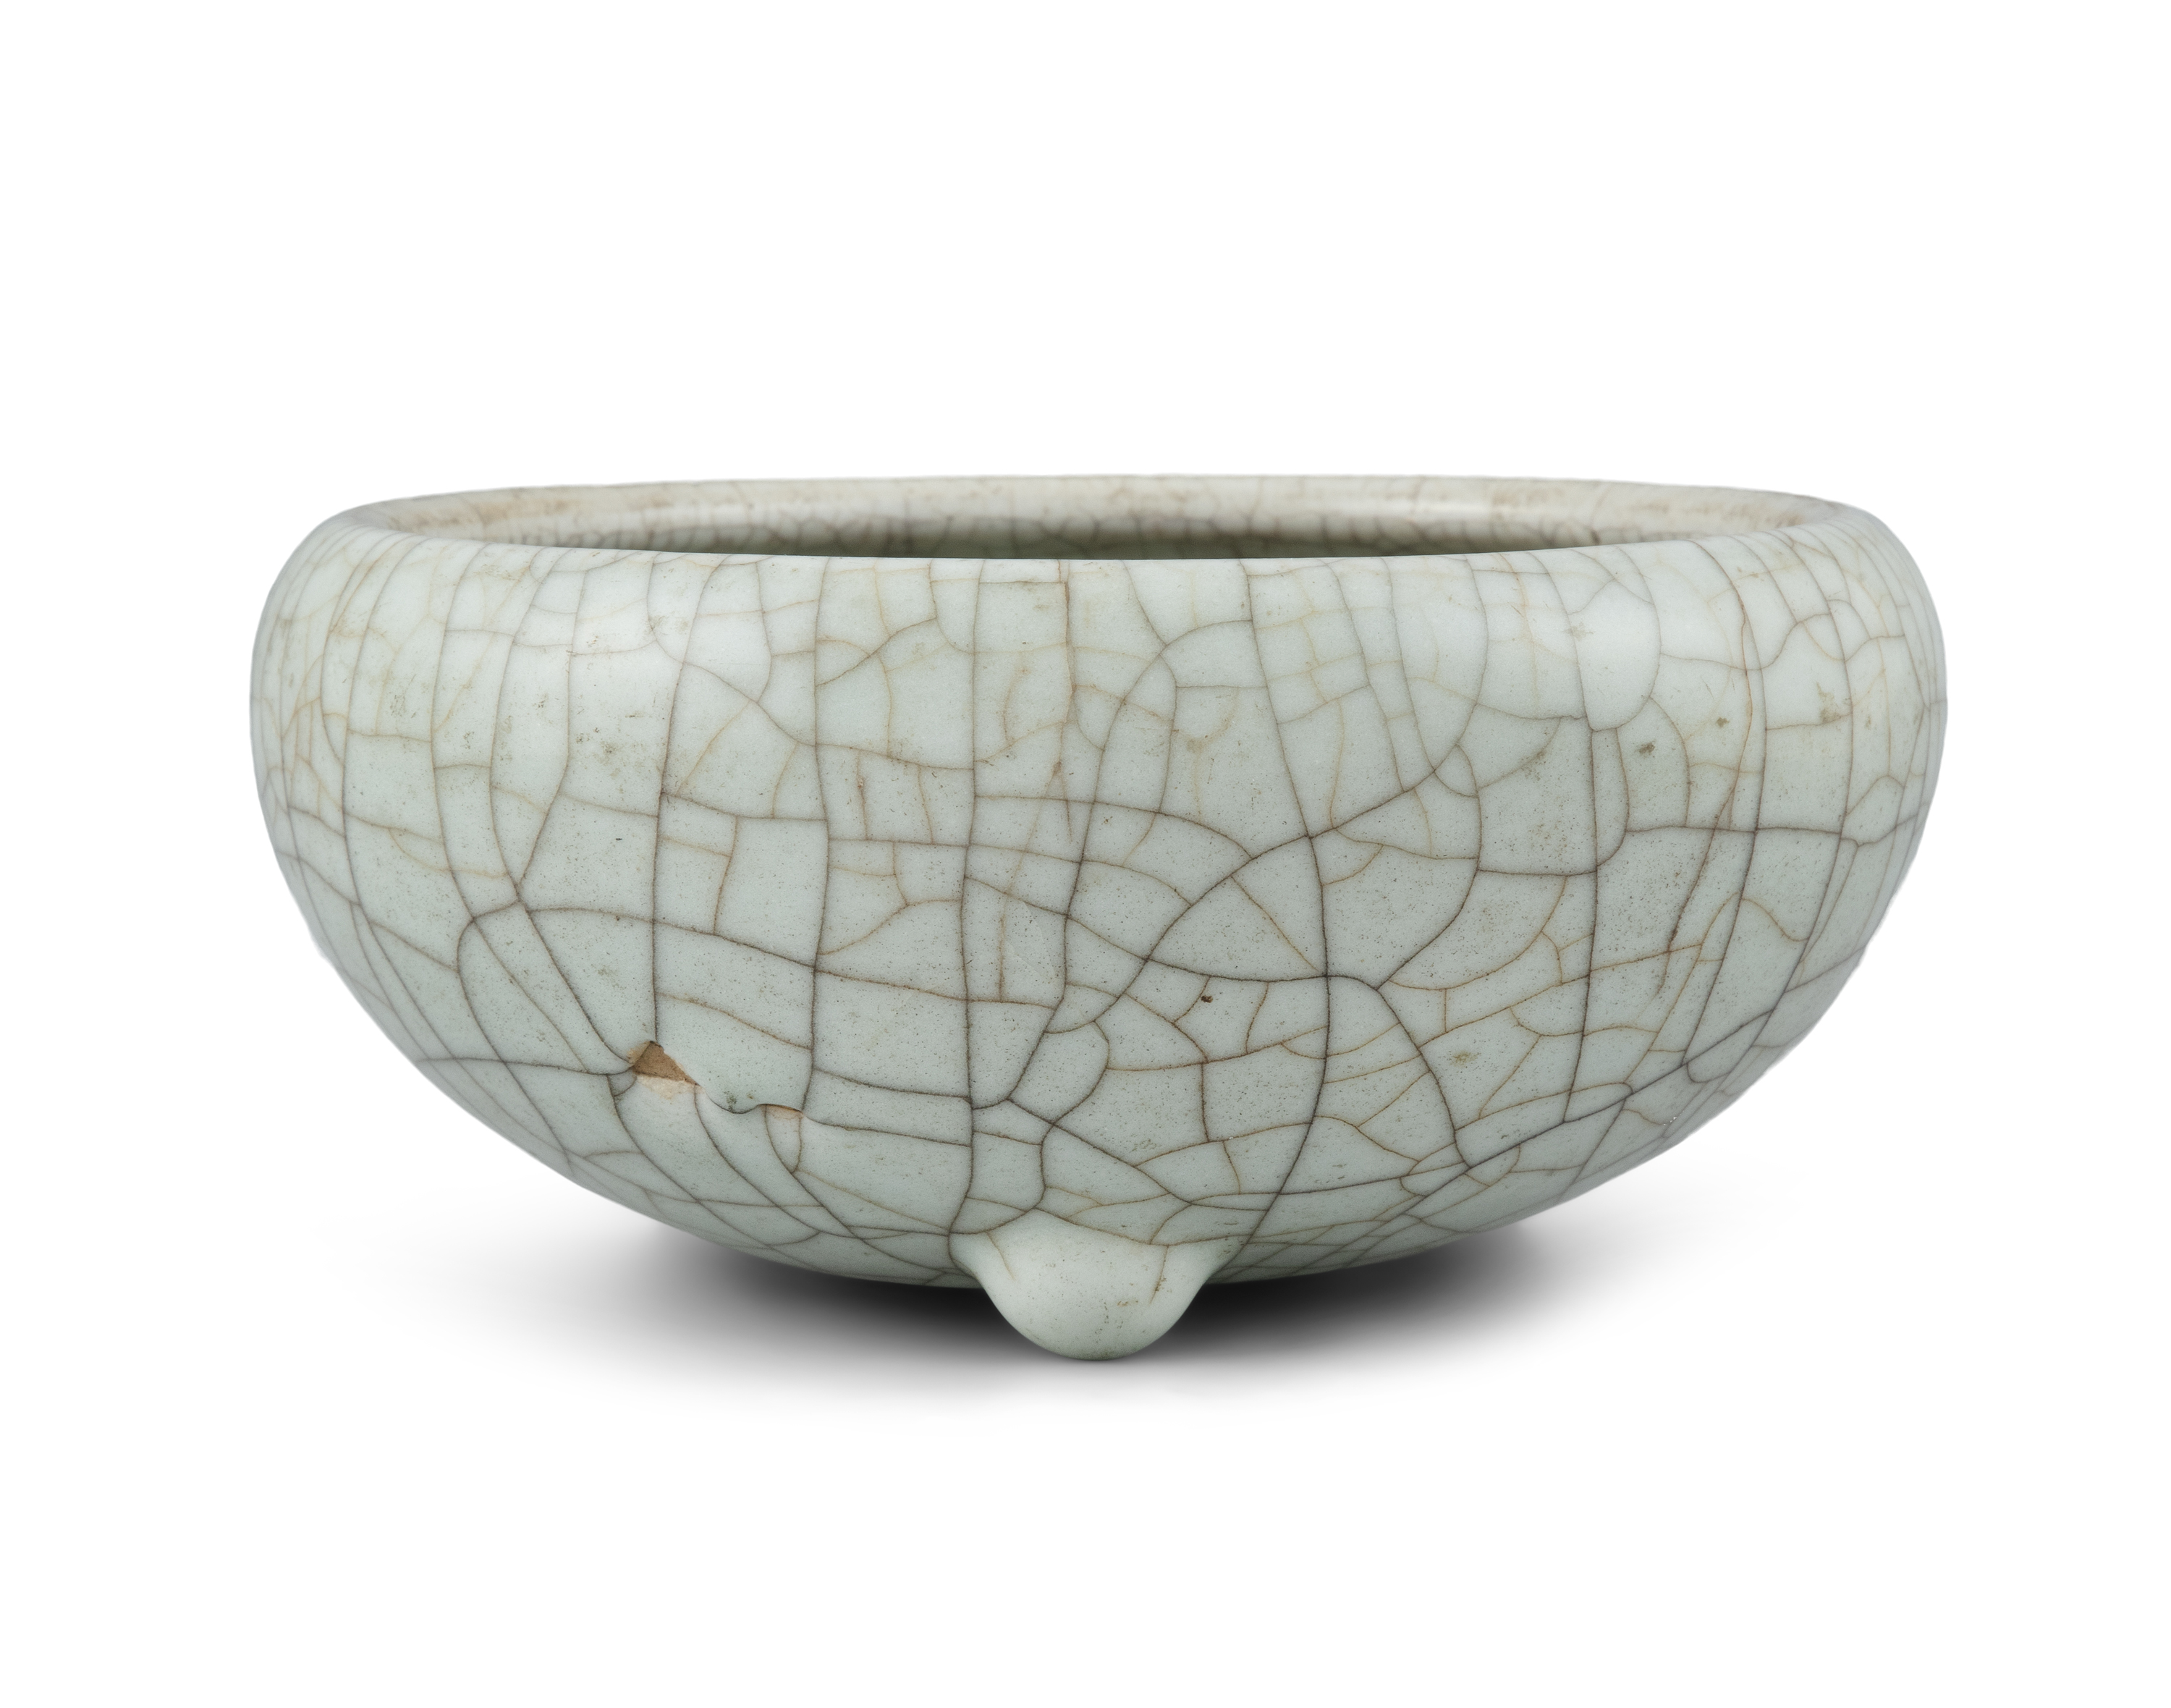 A GEYAO TYPE CRACKLED-CELADON GLAZED GLOBULAR INCENSE-BURNER China, Late Qing to Republican period